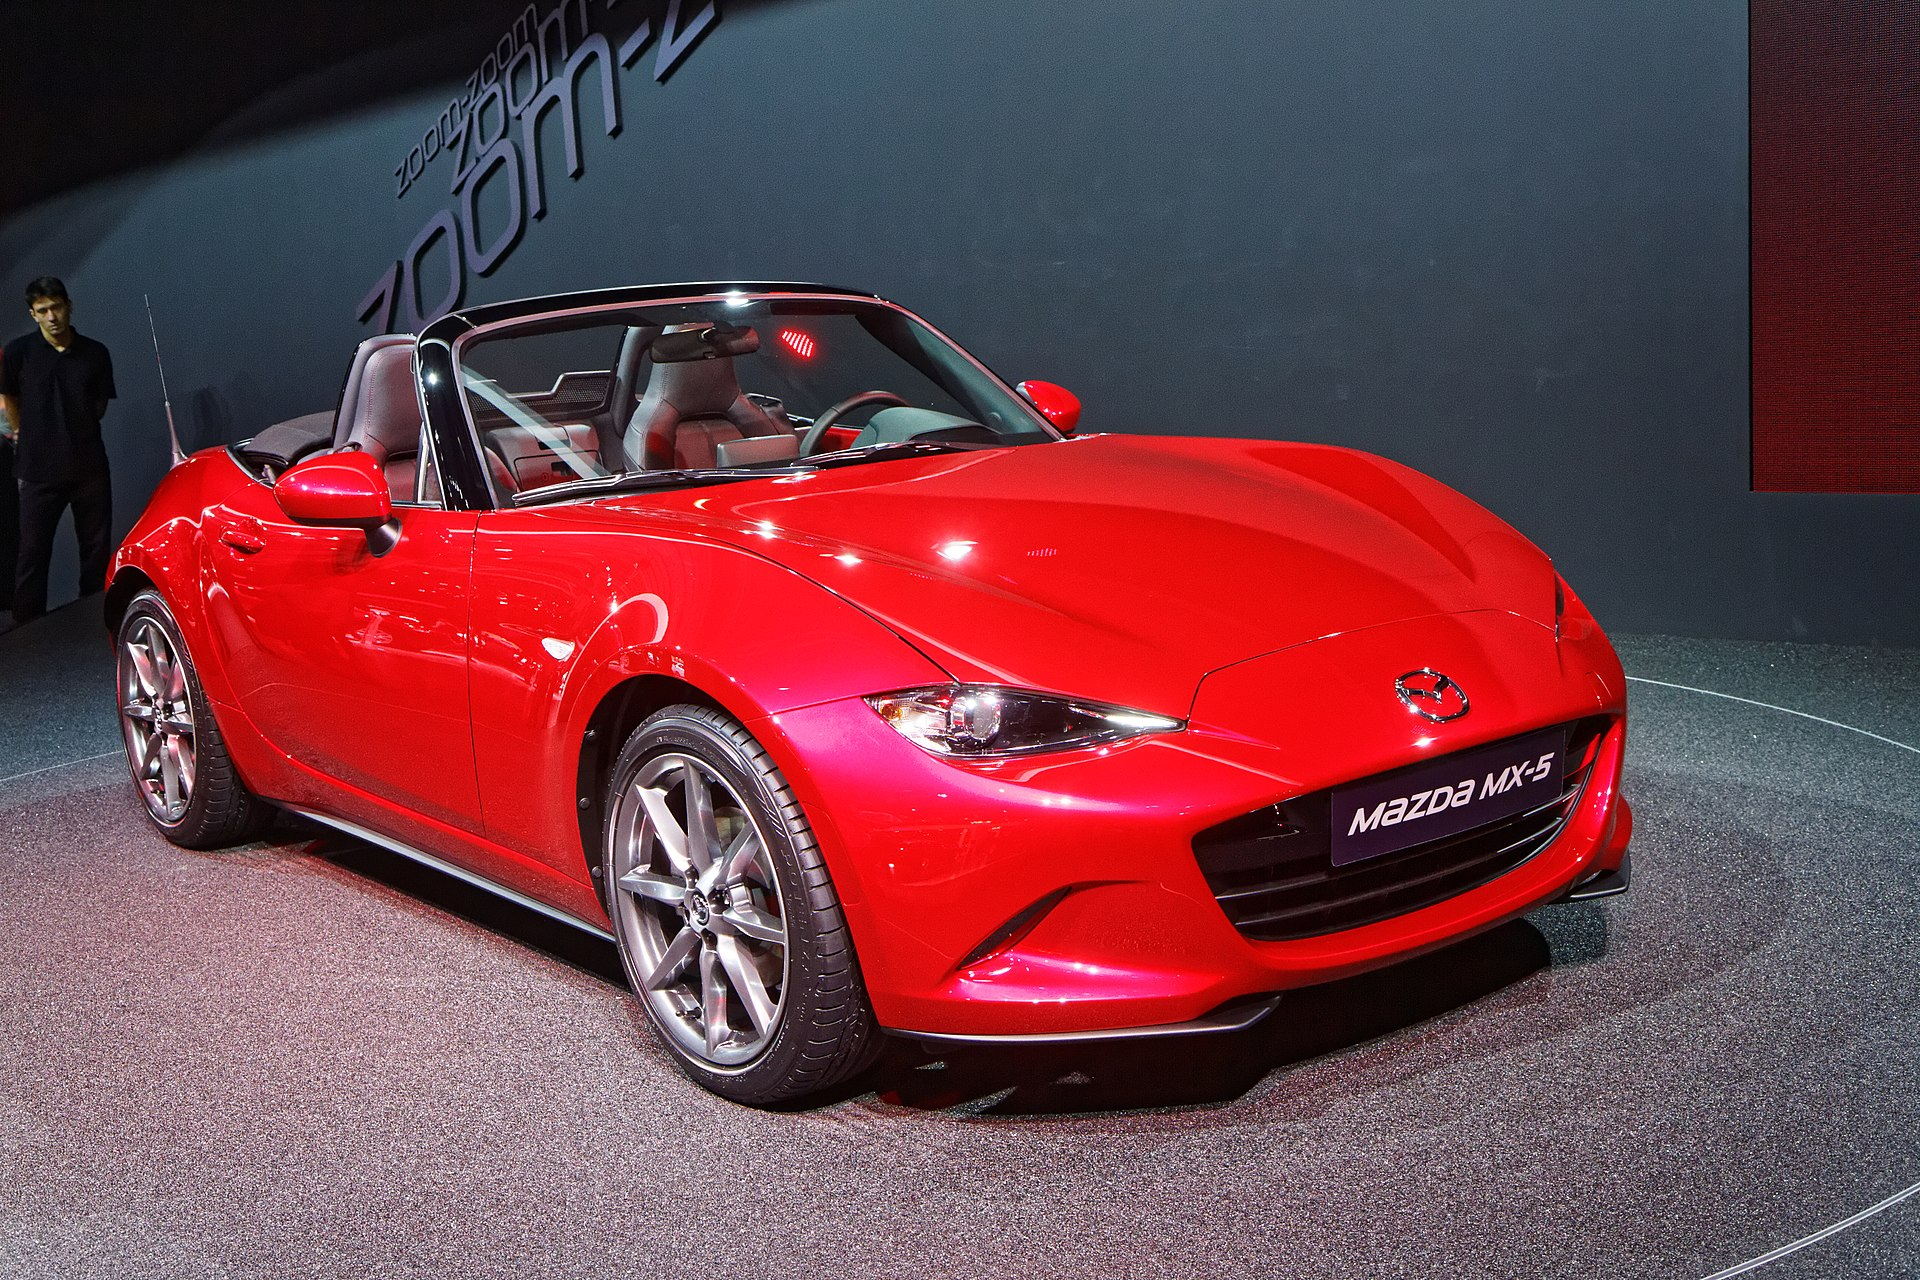 mazda mx 5 wikip dia. Black Bedroom Furniture Sets. Home Design Ideas